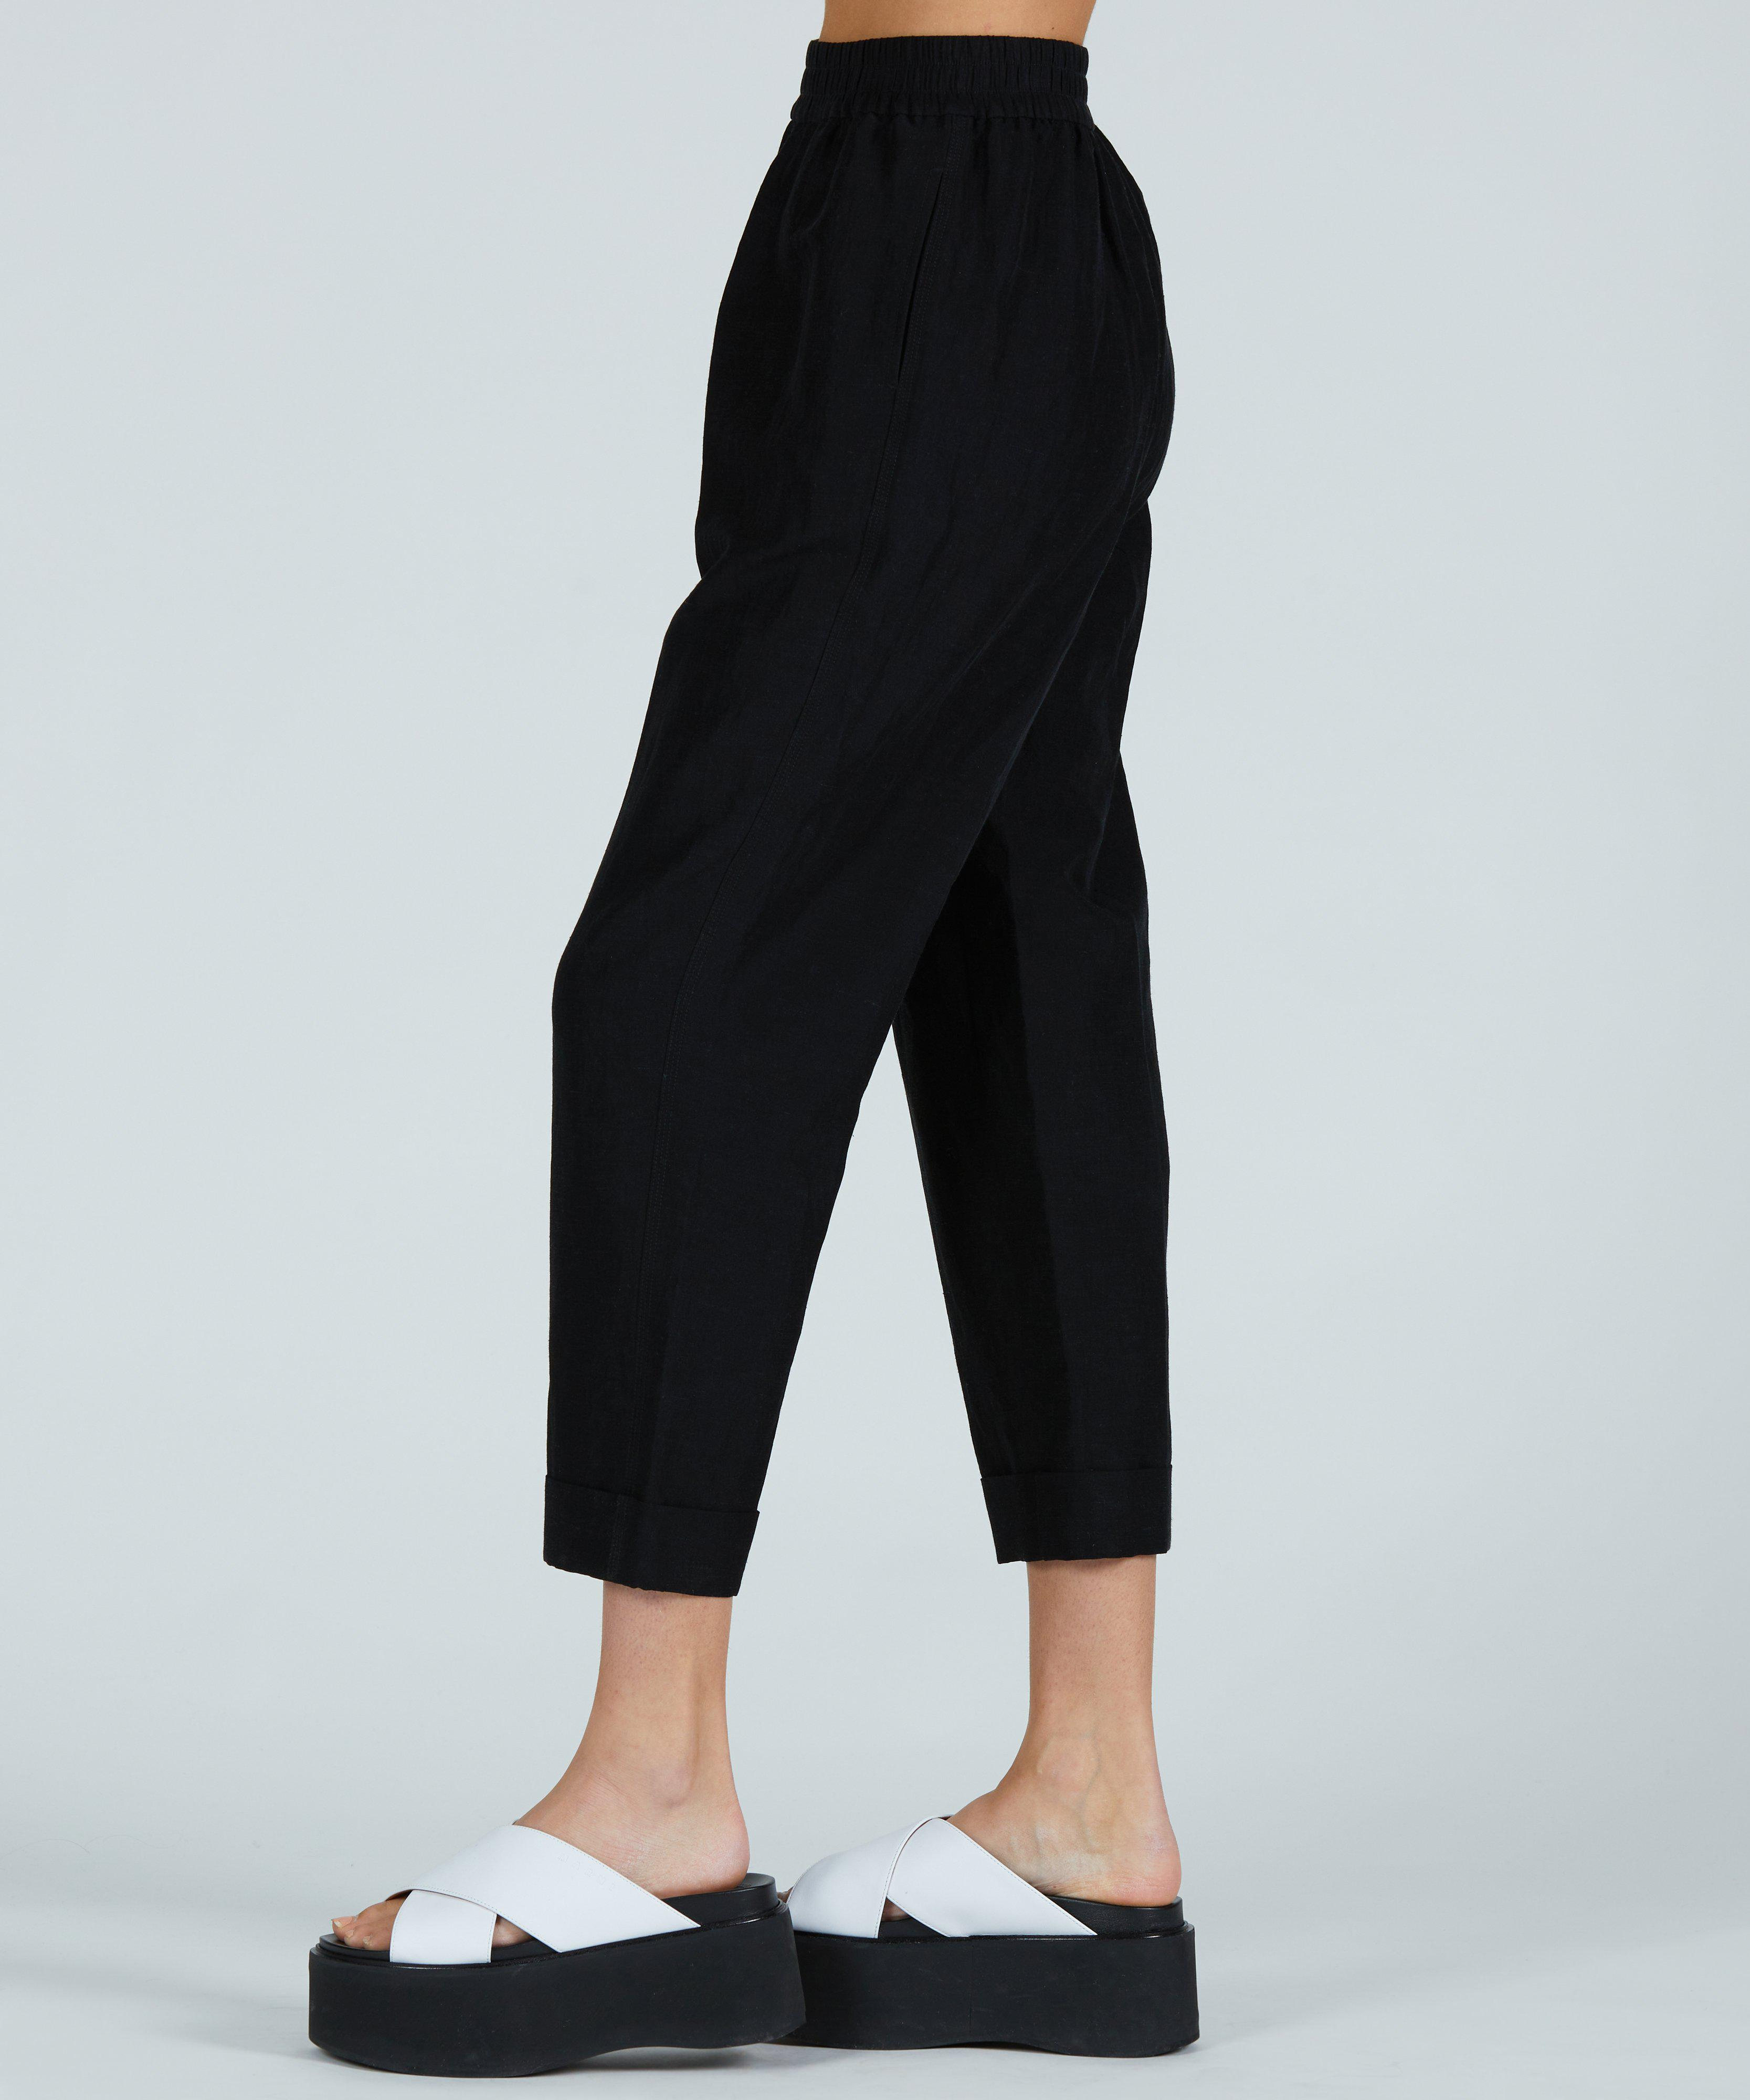 Linen Rayon Pull-On Cuff Pant - Black 1